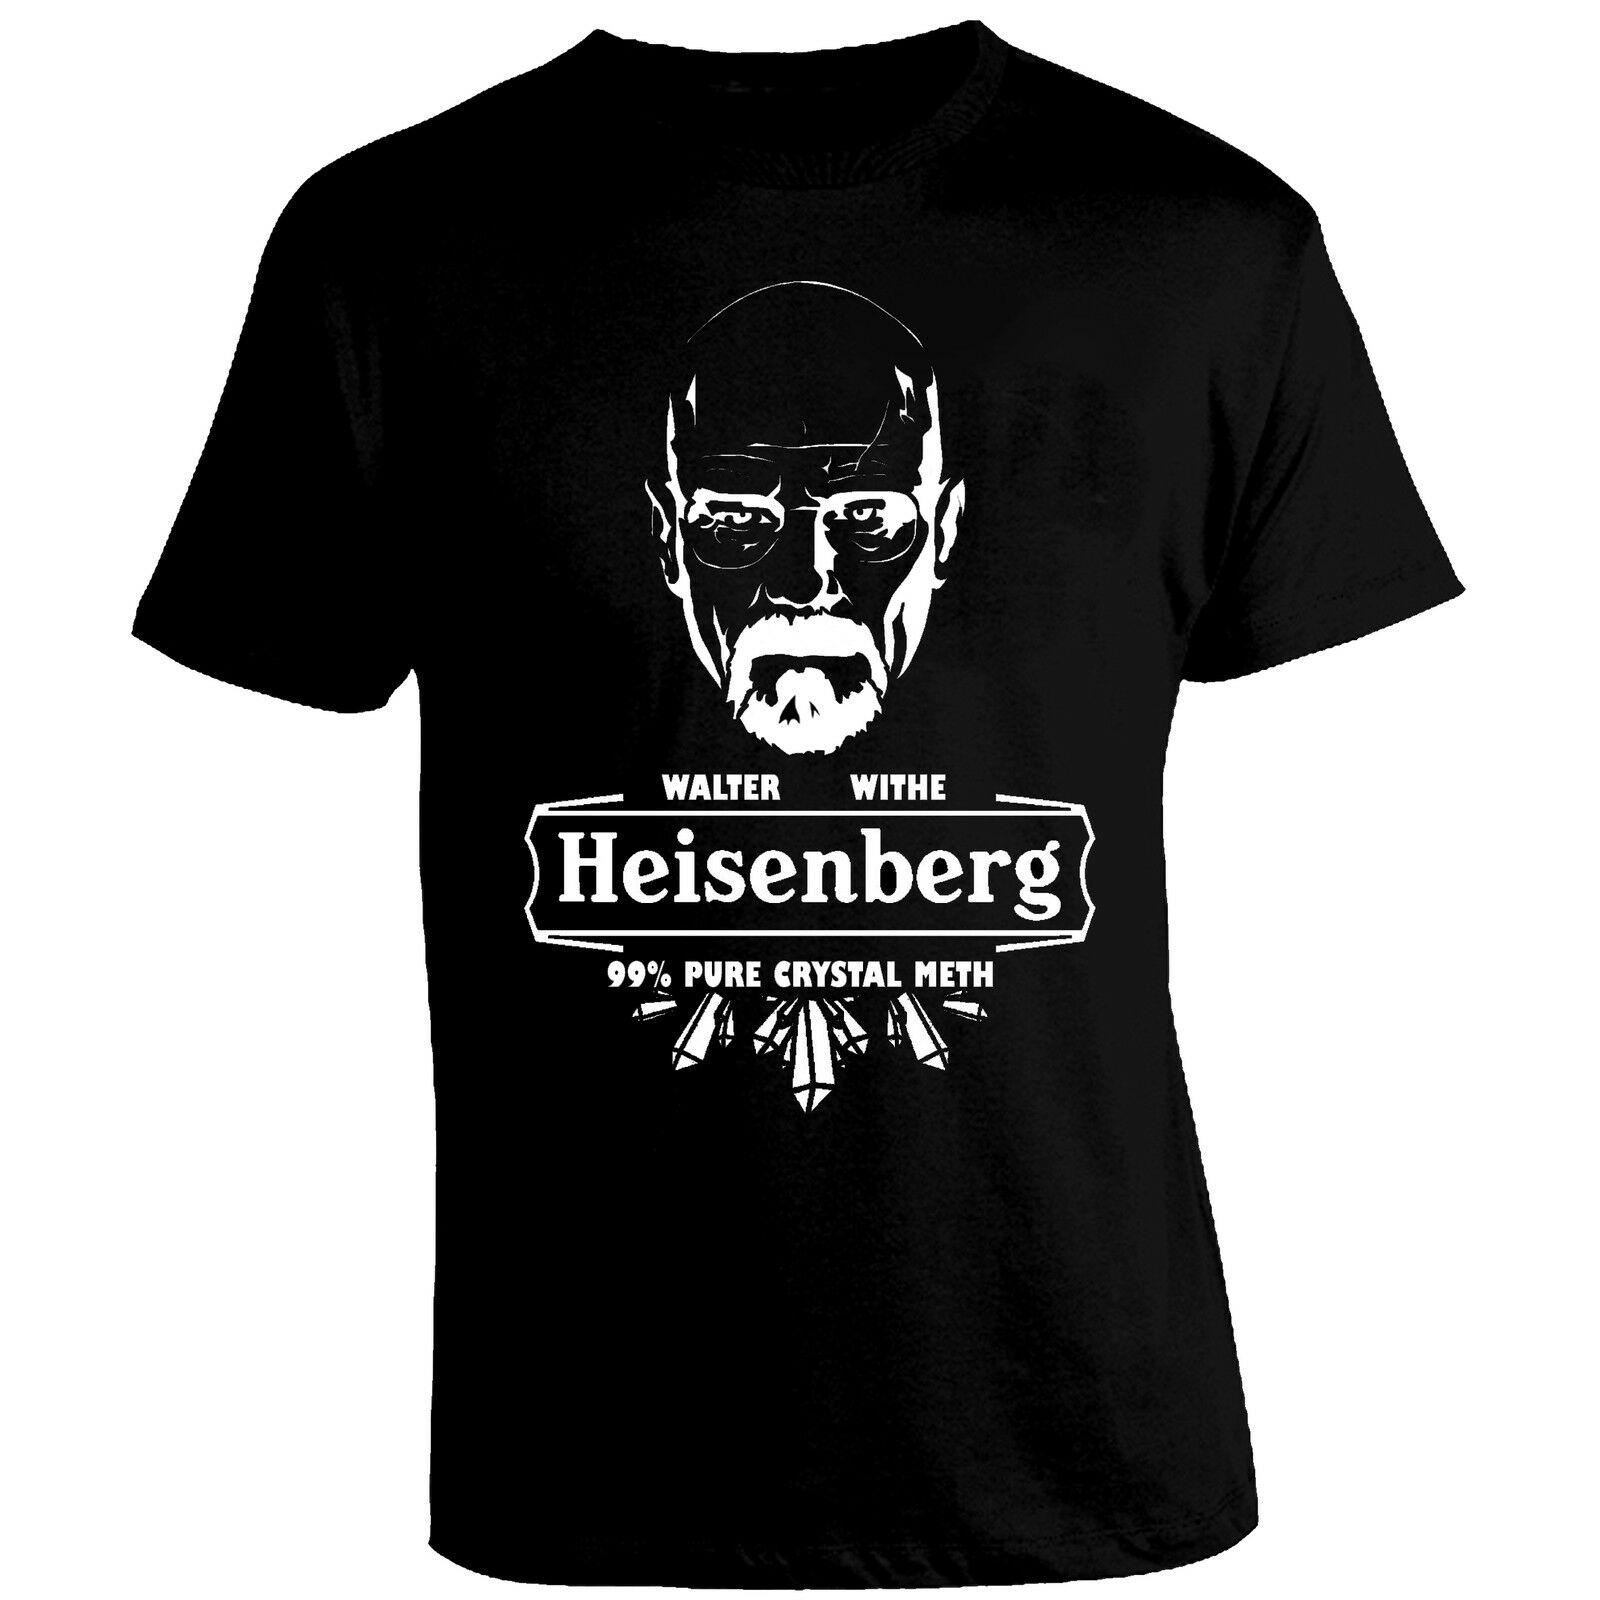 <font><b>Mesh</b></font> <font><b>tshirt</b></font> Heisenberg Breaking Bad Walter White TV Show <font><b>Men</b></font> Women <font><b>tshirt</b></font> Free Shipping All Colors image